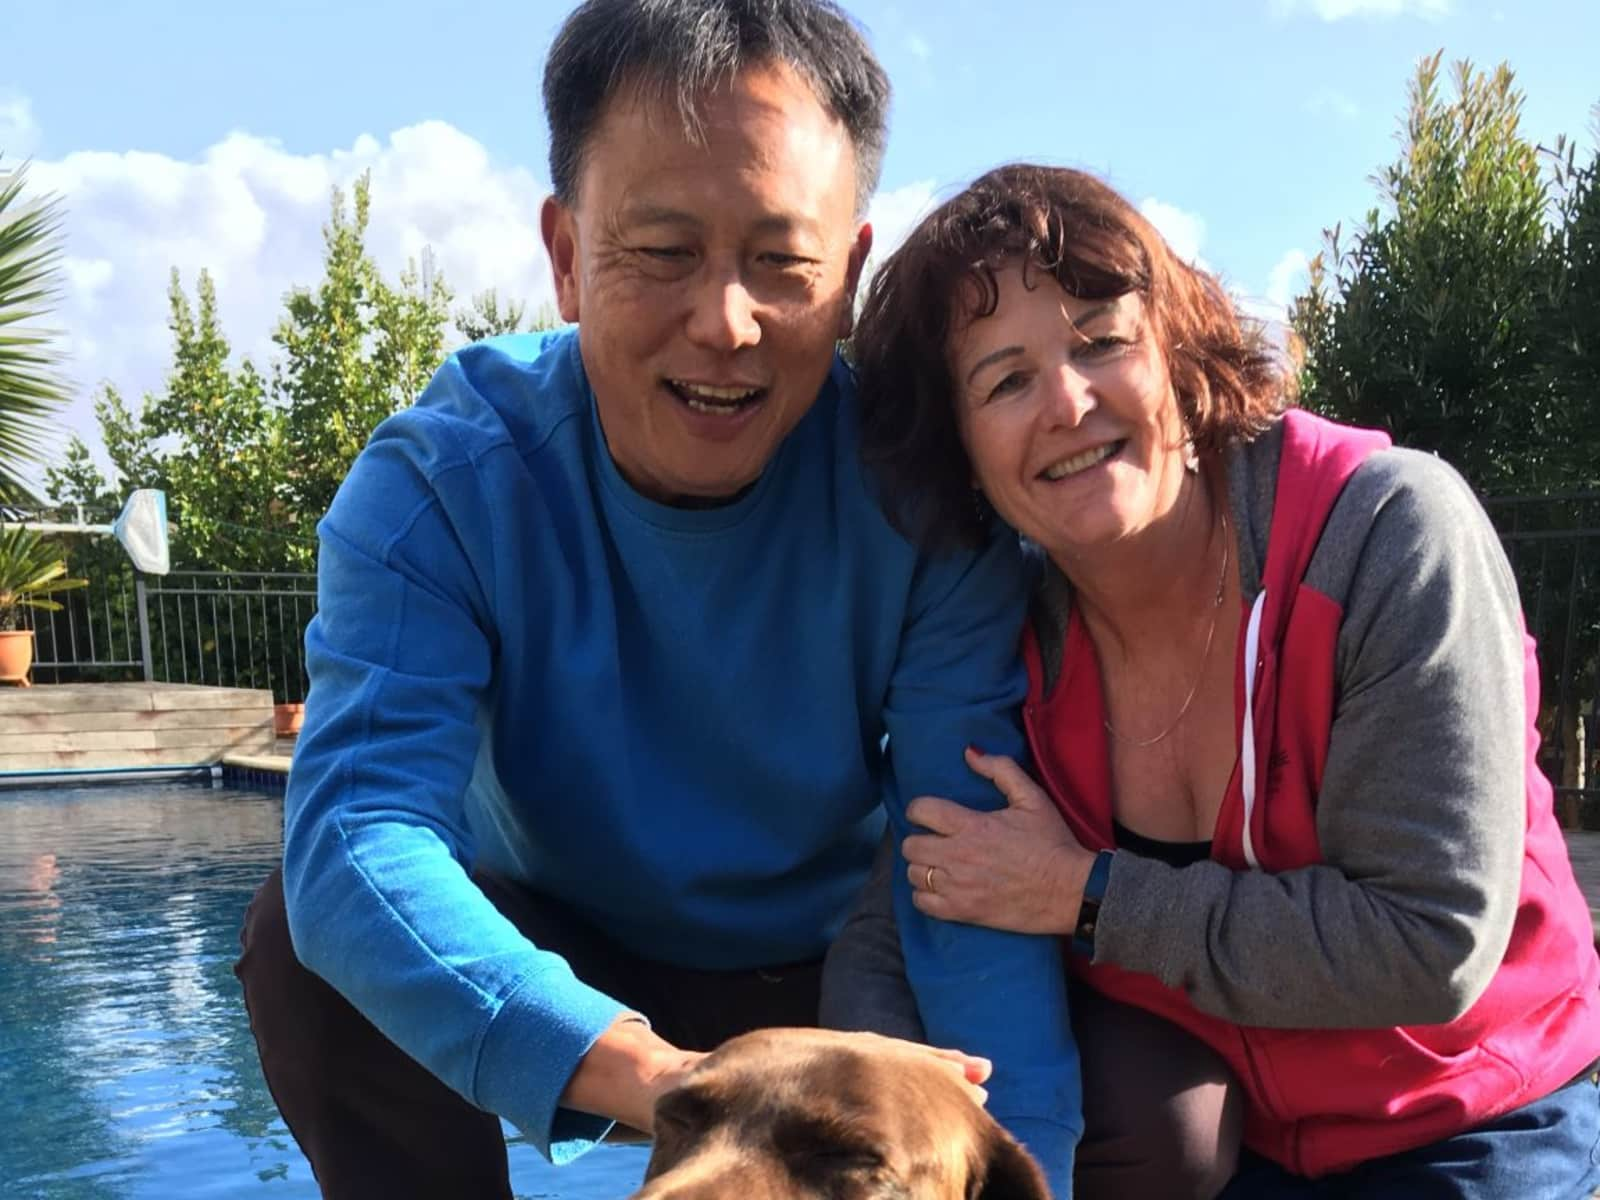 Jane & Steve from Tauranga, New Zealand